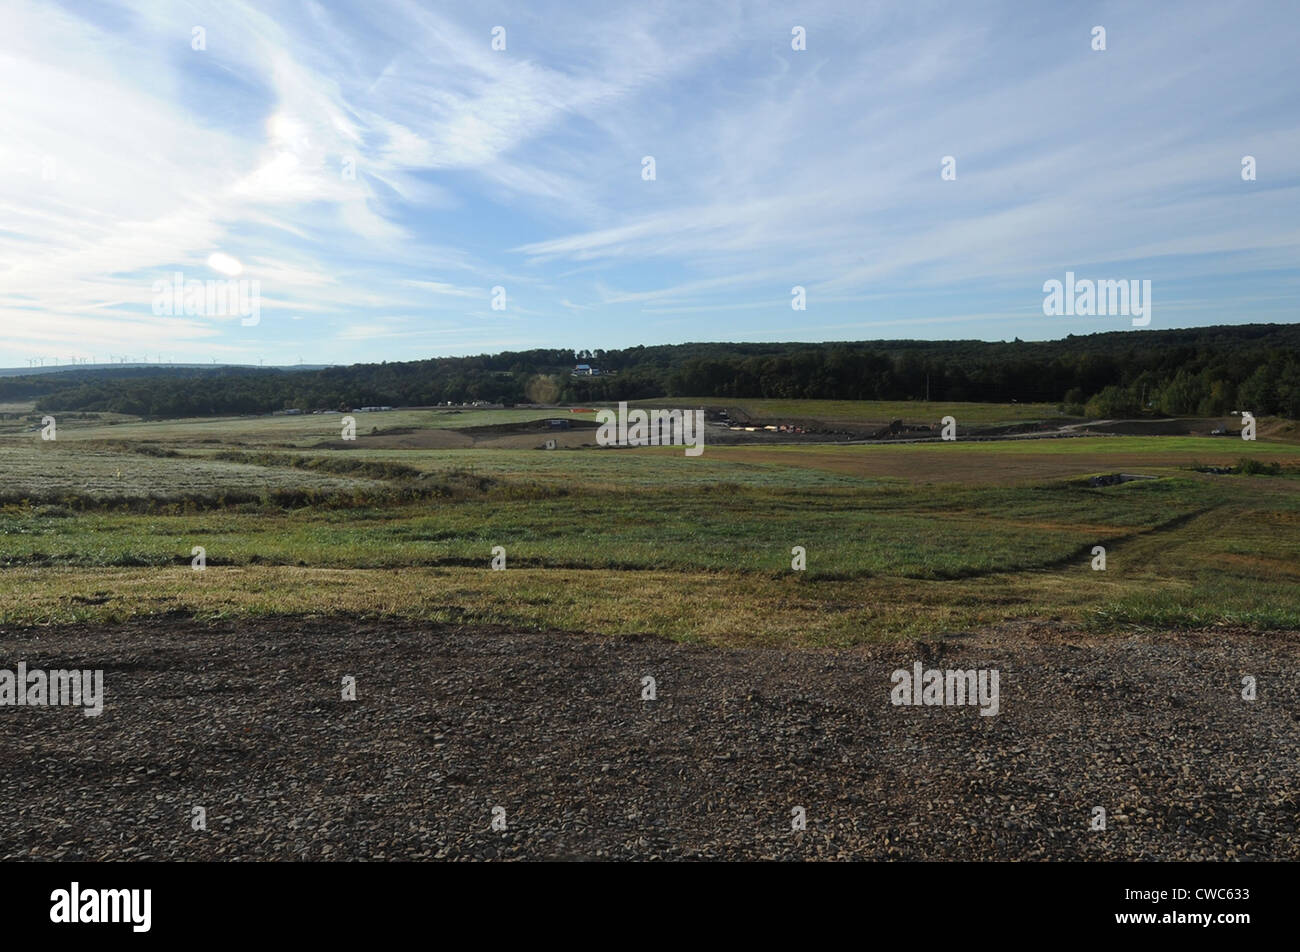 The Western Overlook where Flight 93 crashed on September 11 2001 will be the site of the Flight 93 National Memorial. - Stock Image